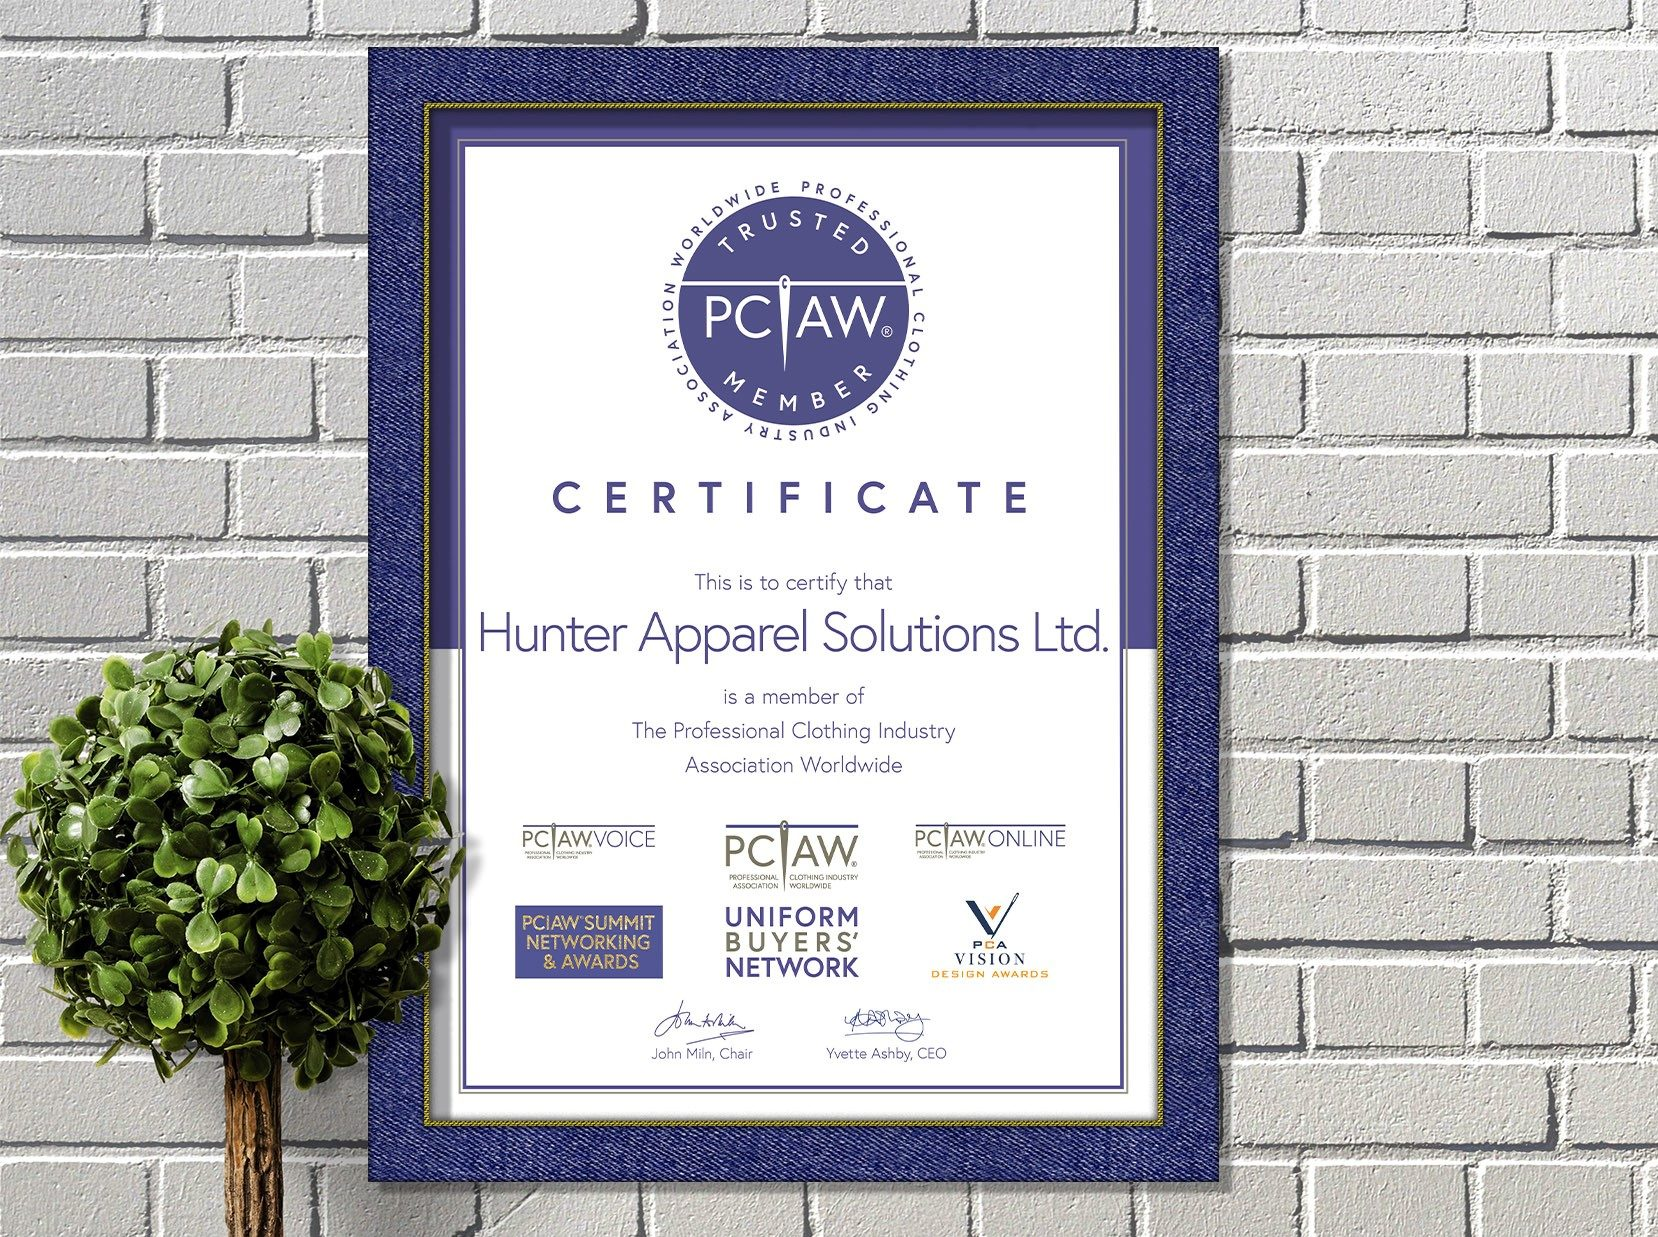 The PCIAW® is proud to include Hunter Apparel Solutions Limited, the multi-award winning software company, as a PCIAW® Trusted Member.